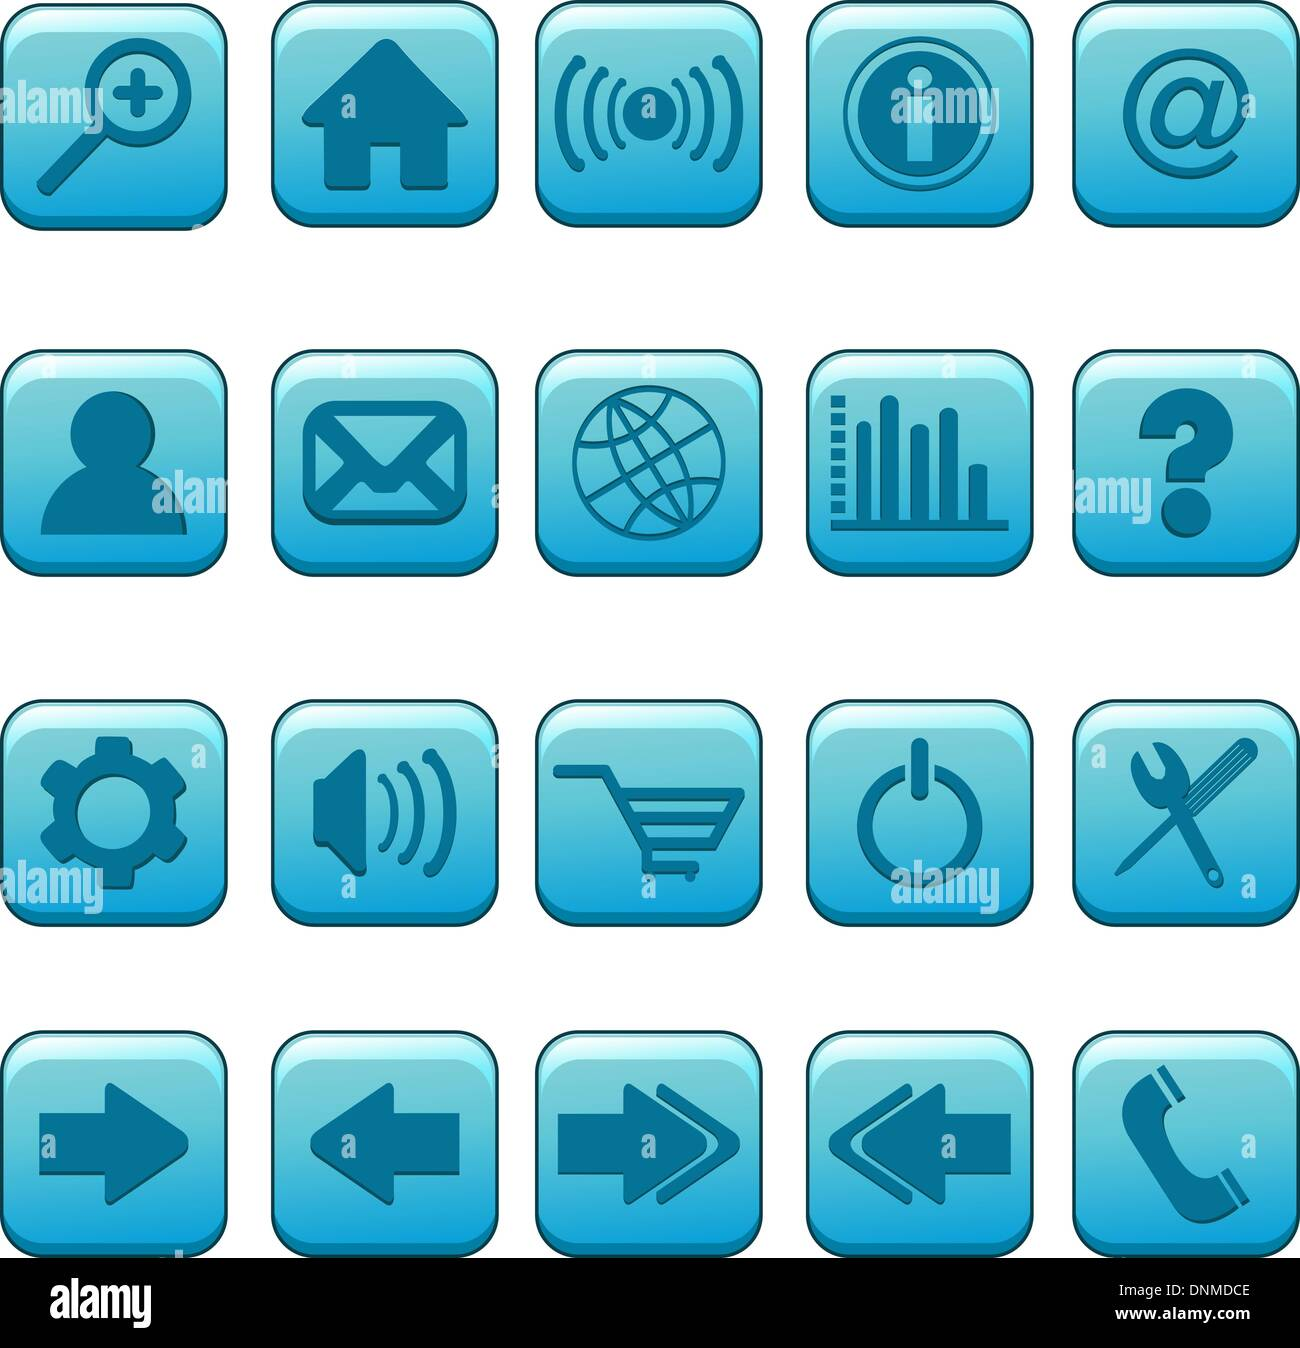 A vector illustration of a set of icons for websites - Stock Image